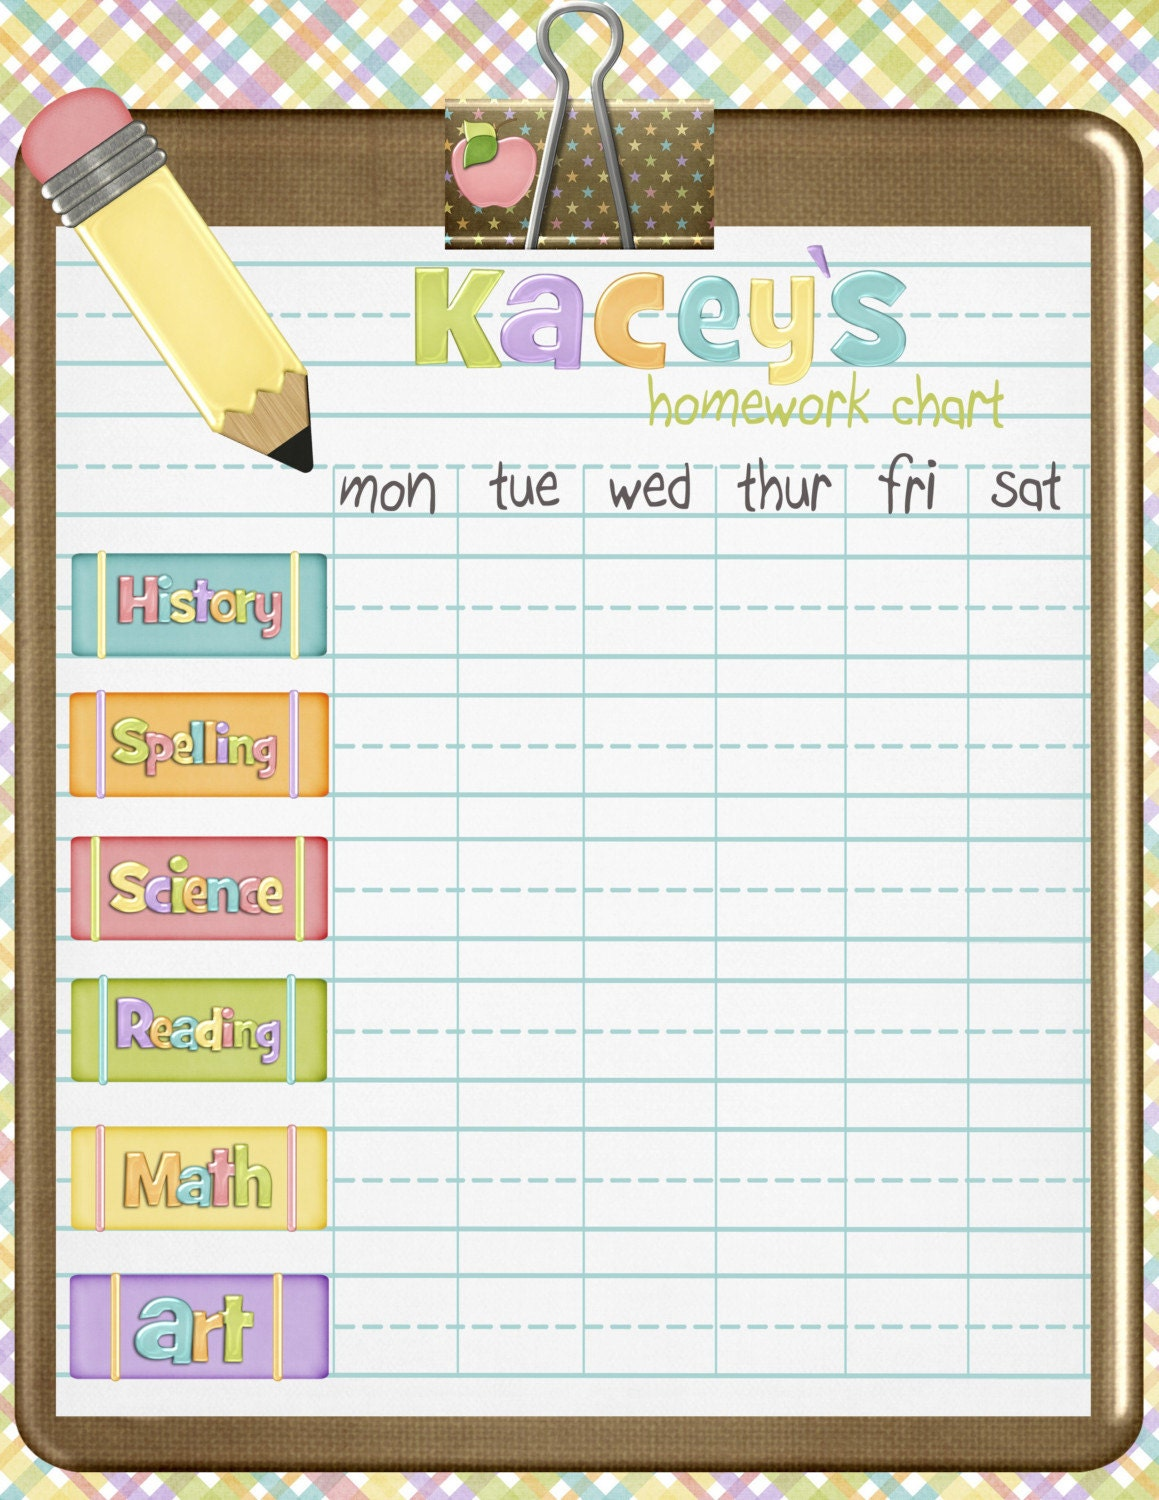 ... Hearts Personalized Calendar Pad | Kids Schedule Pad | Homework Chart